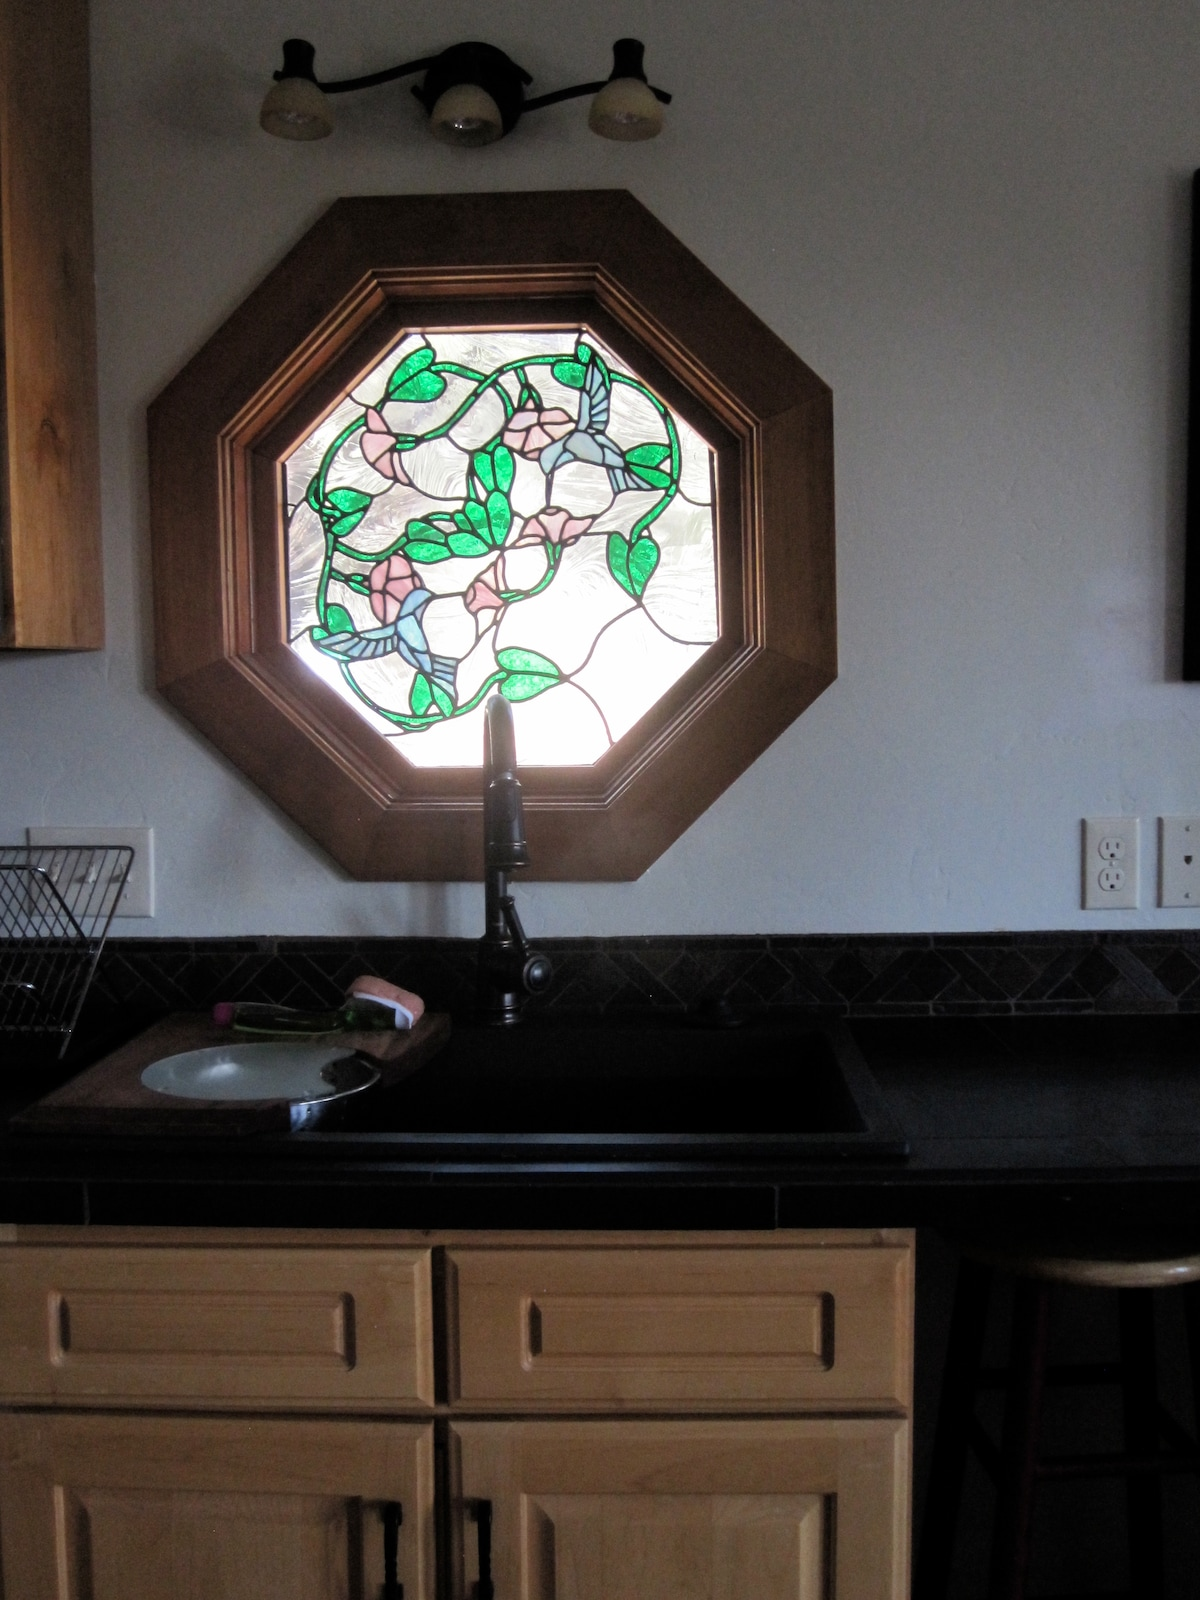 New concrete sink, custom stained glass.